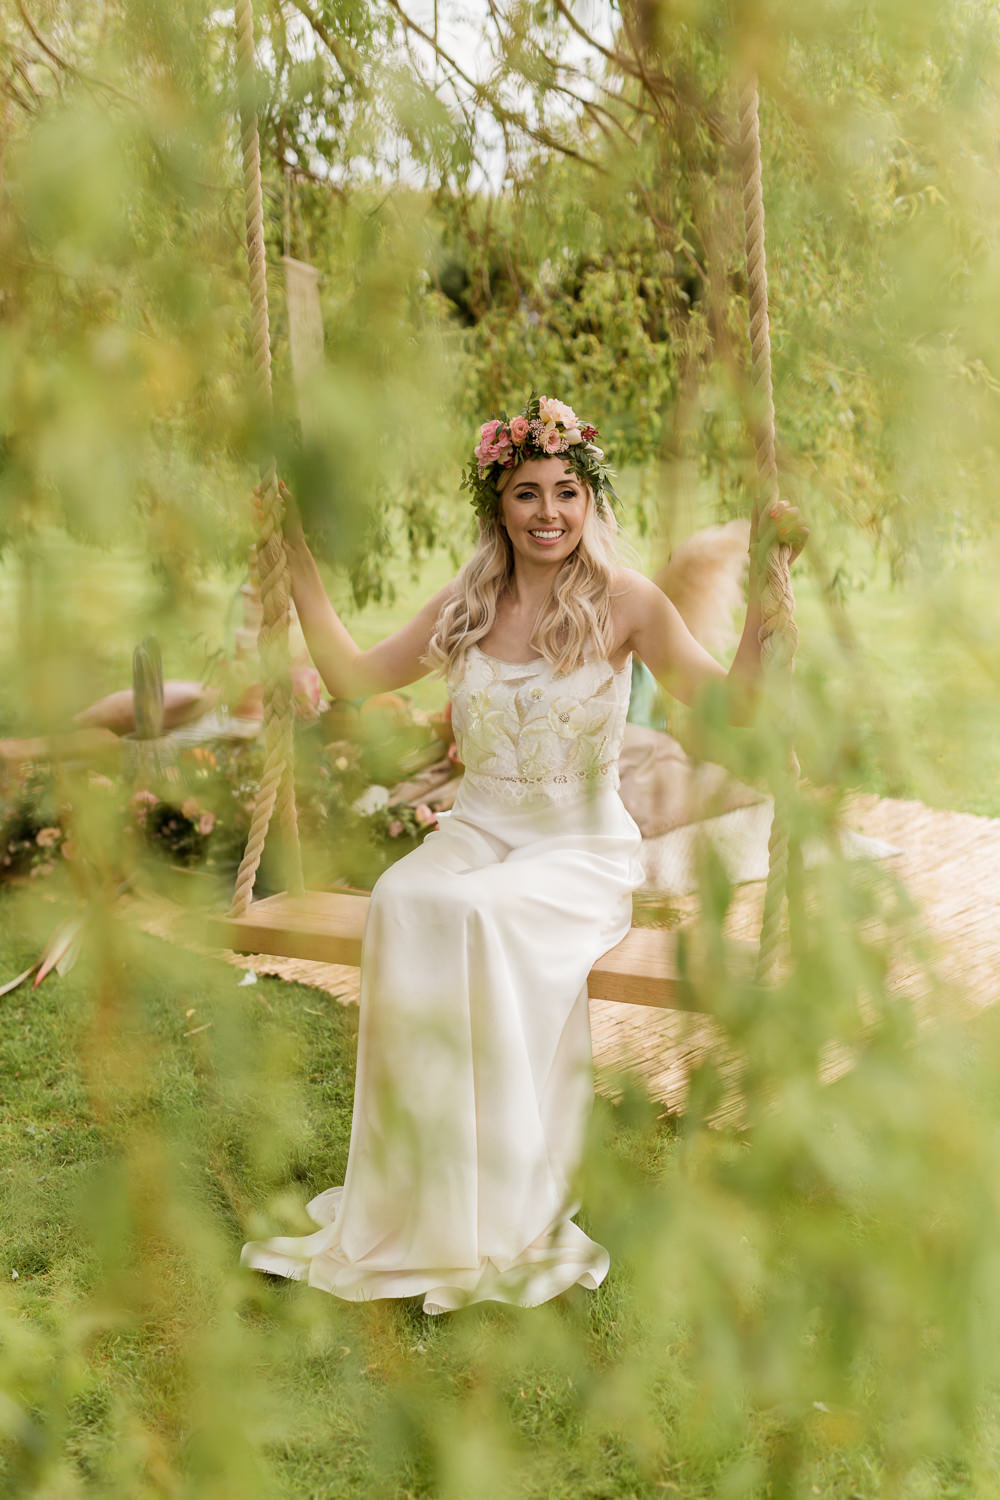 Dress Gown Bride Bridal Separeates Skirt Top Tropical Boho Countryside Wedding Ideas Sarah Brookes Photography